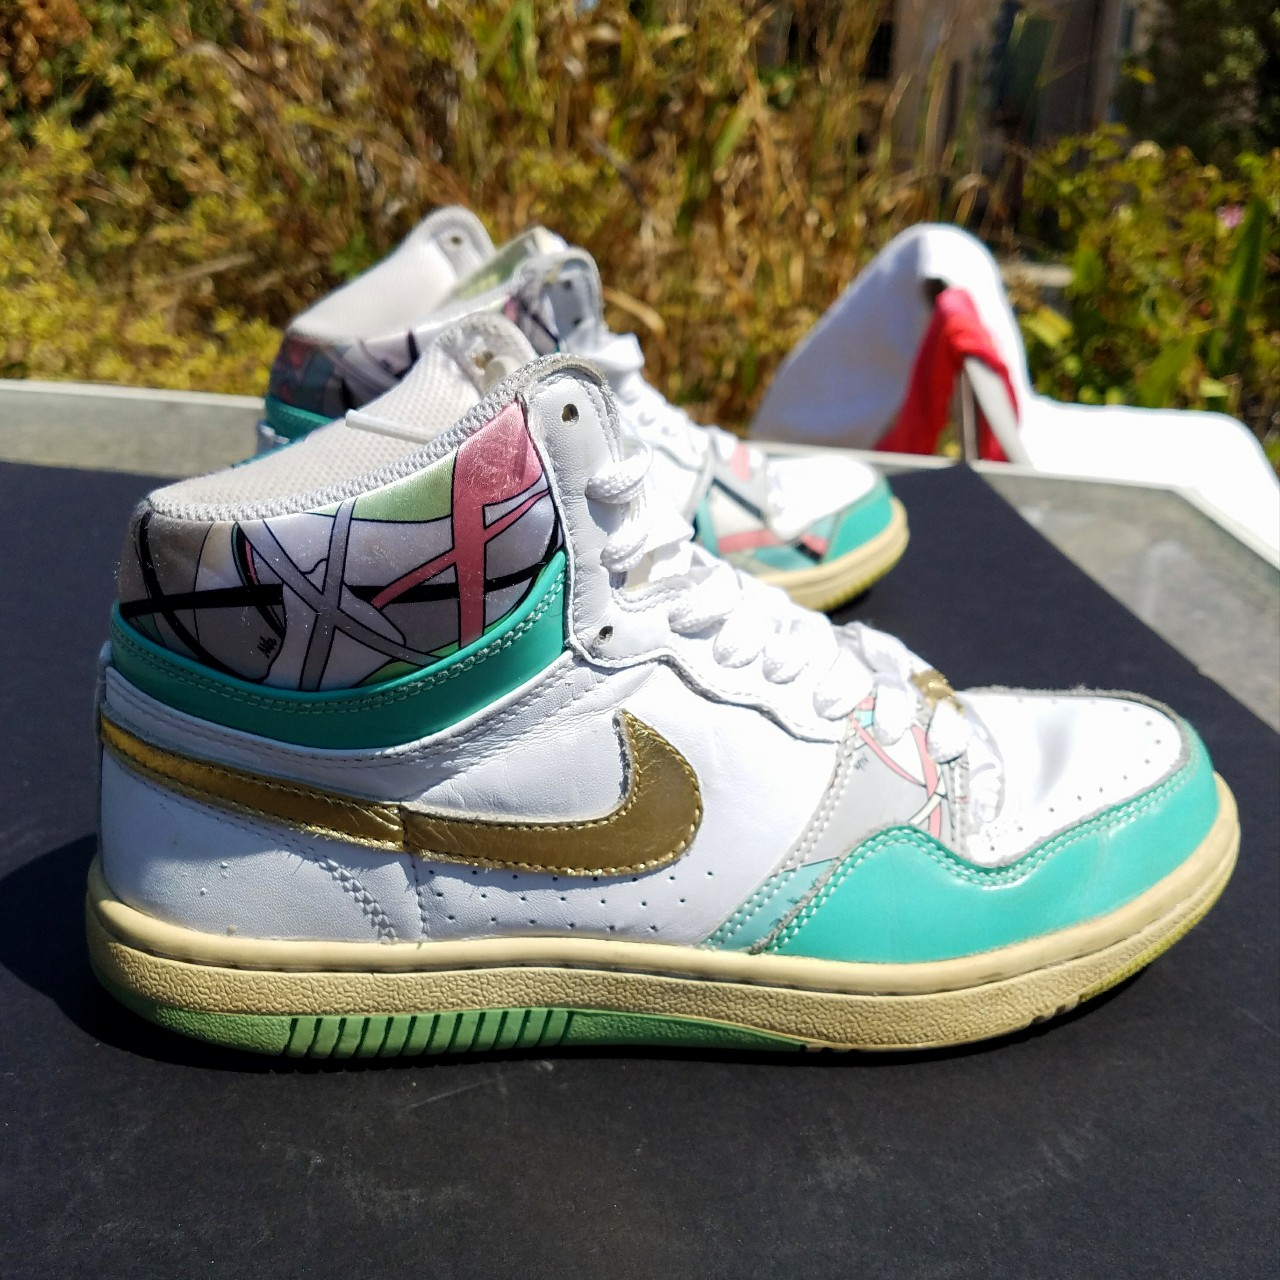 80s style Nike high-tops Good condition